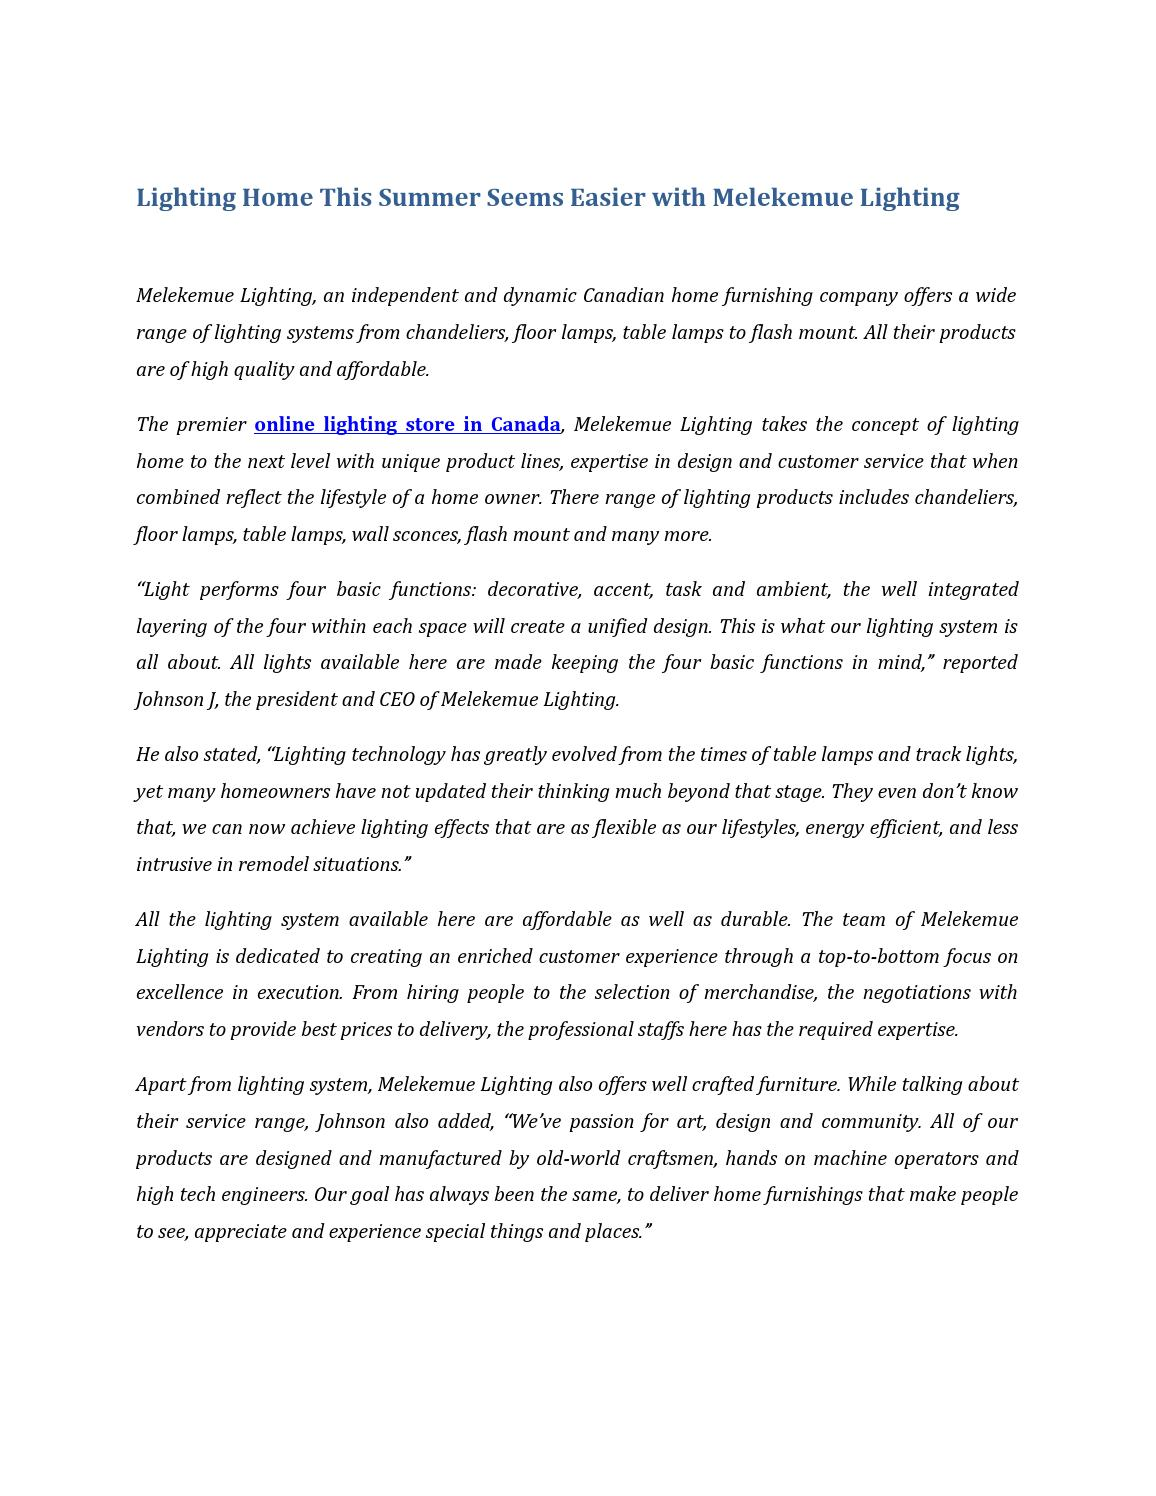 Affordable Lighting Canada Lighting Home This Summer Seems Easier With Melekemue Lighting By